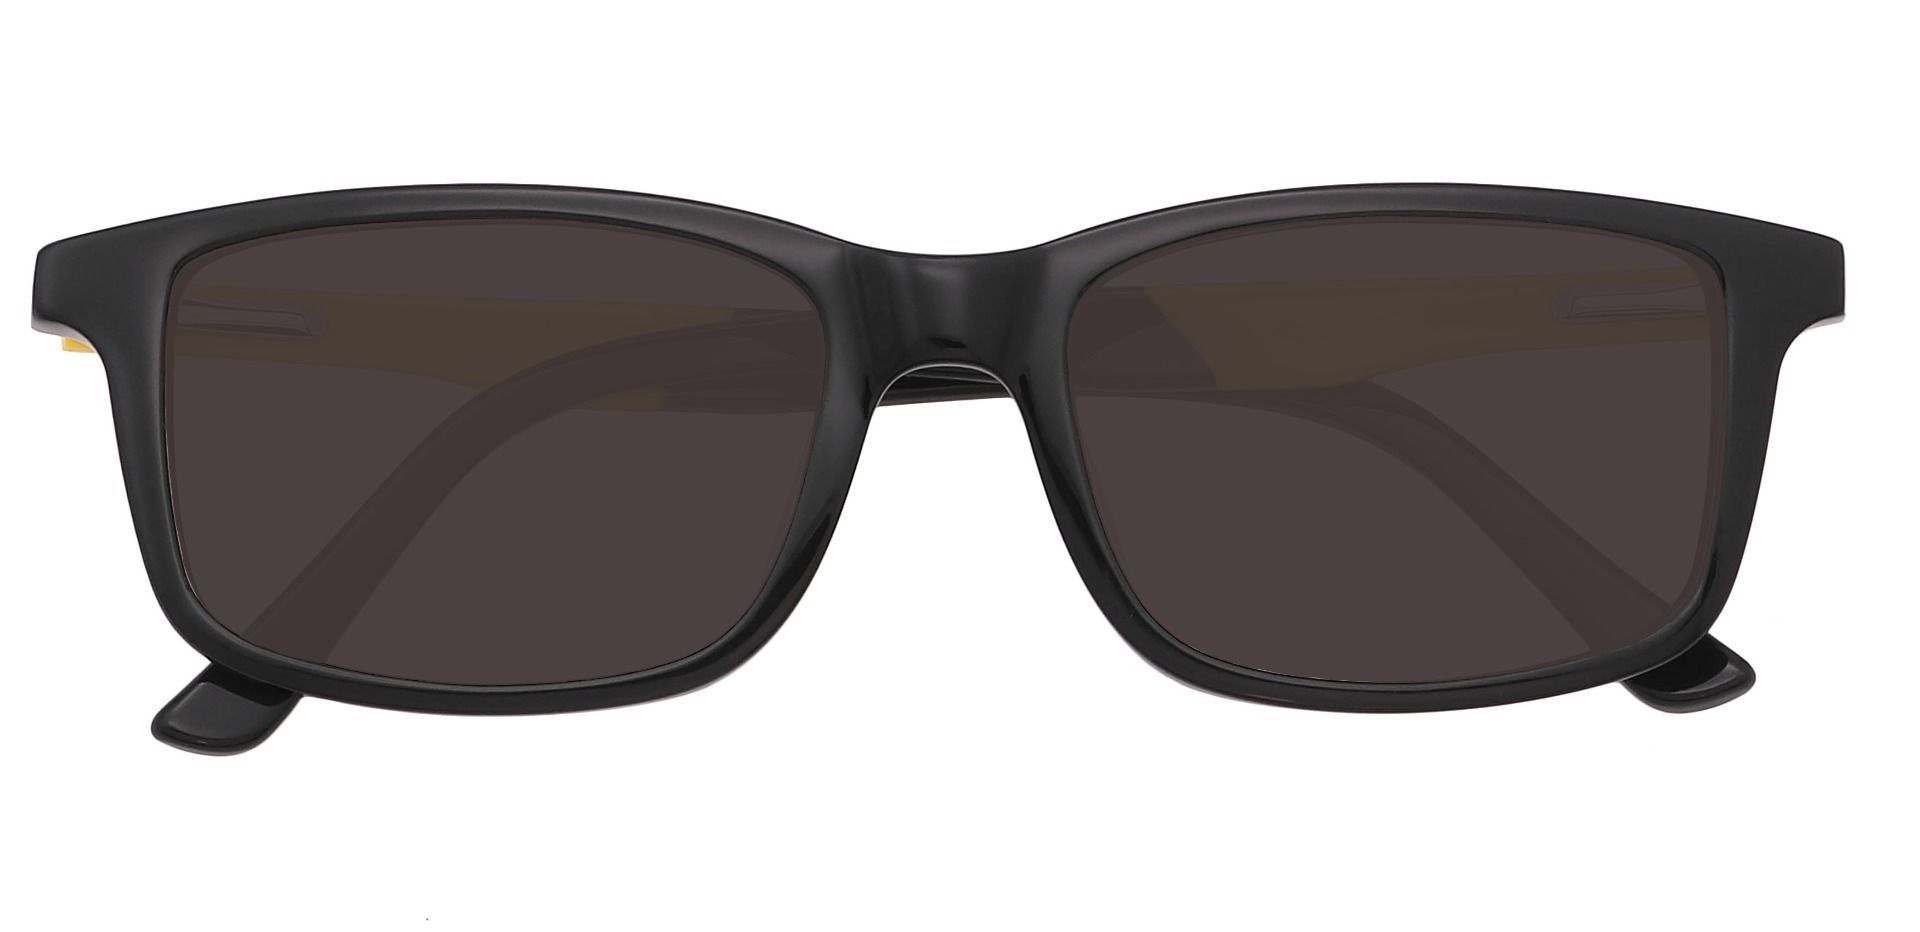 Rivers Rectangle Single Vision Sunglasses - Black Frame With Gray Lenses